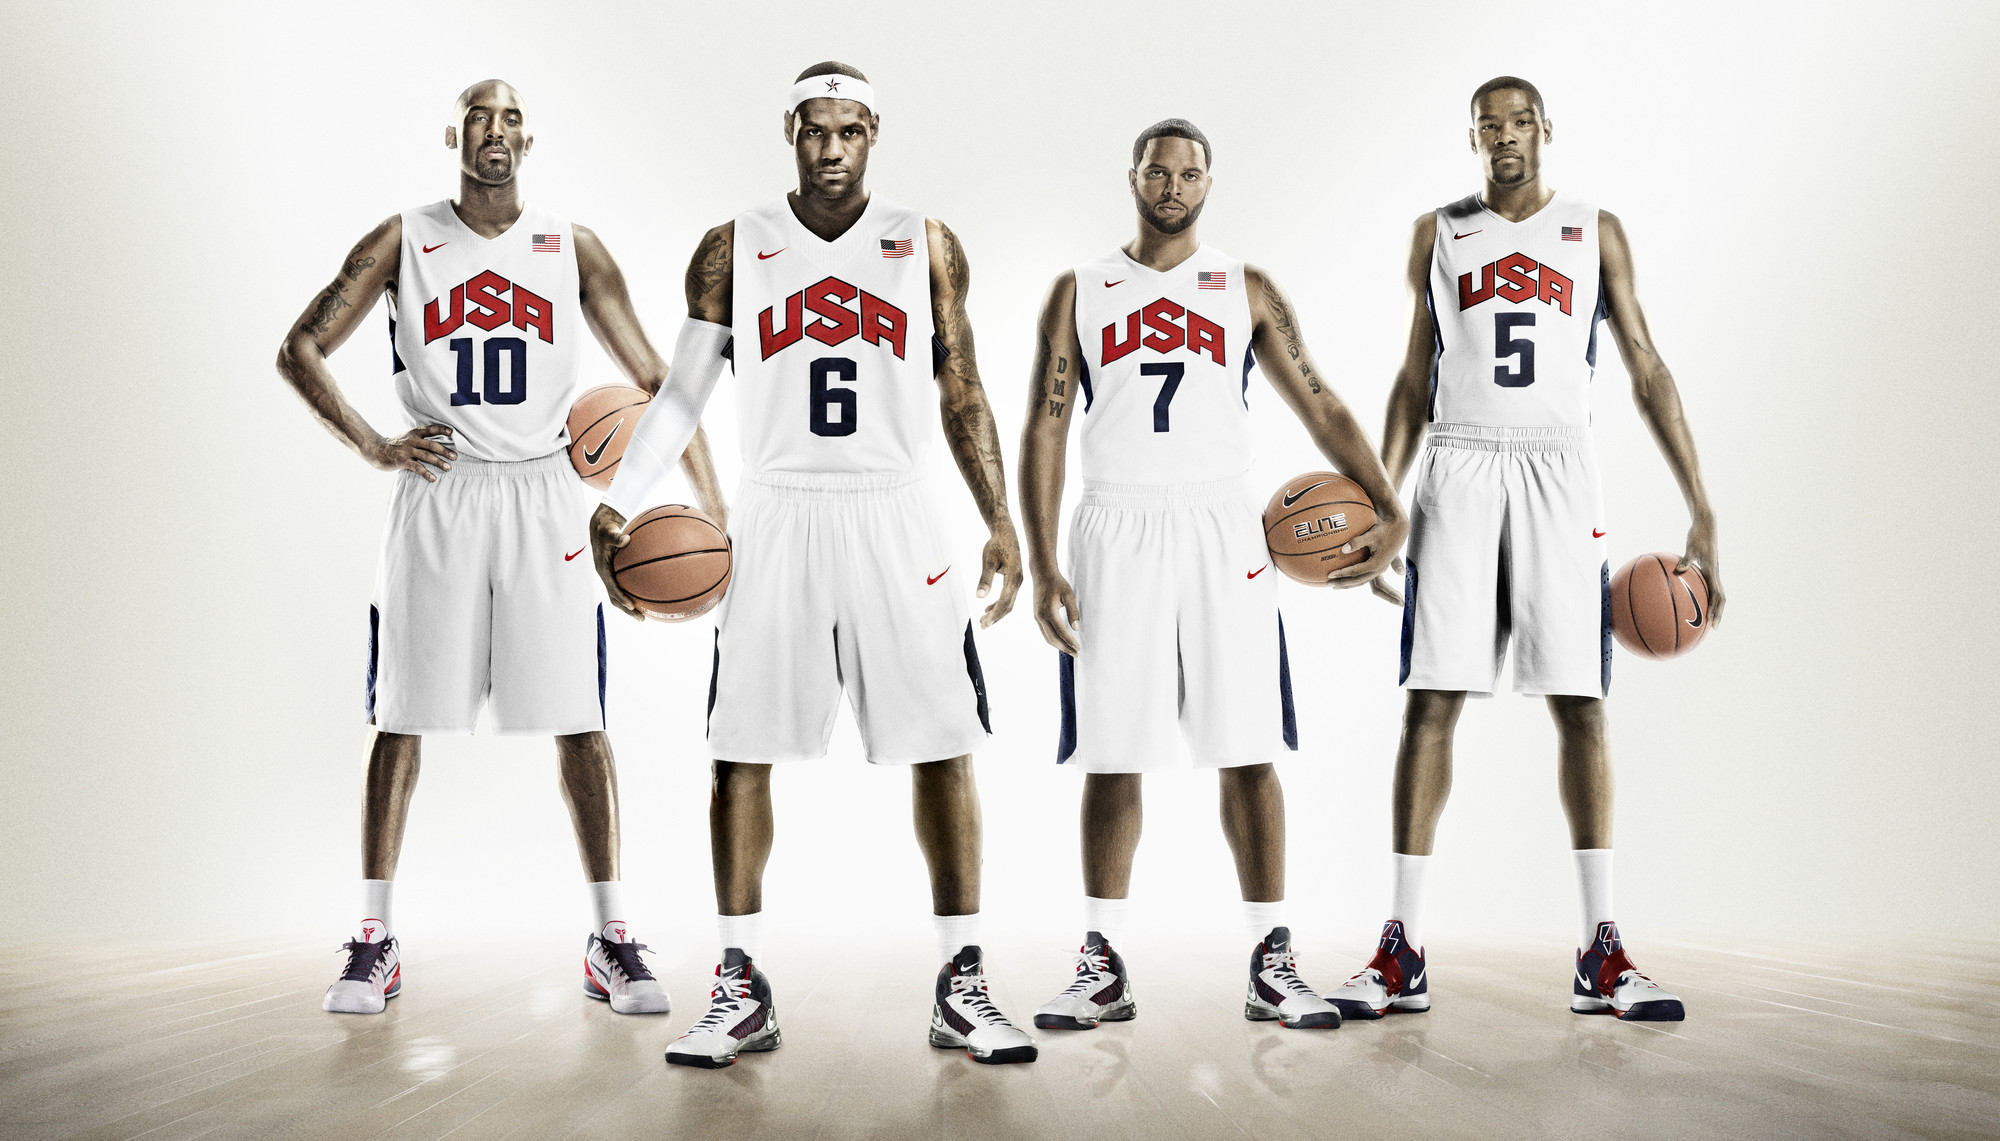 636cbb810e3 Nike-Basketball-Innovation-Su12-USAB-Group original – THE HOTSPOTORLANDO